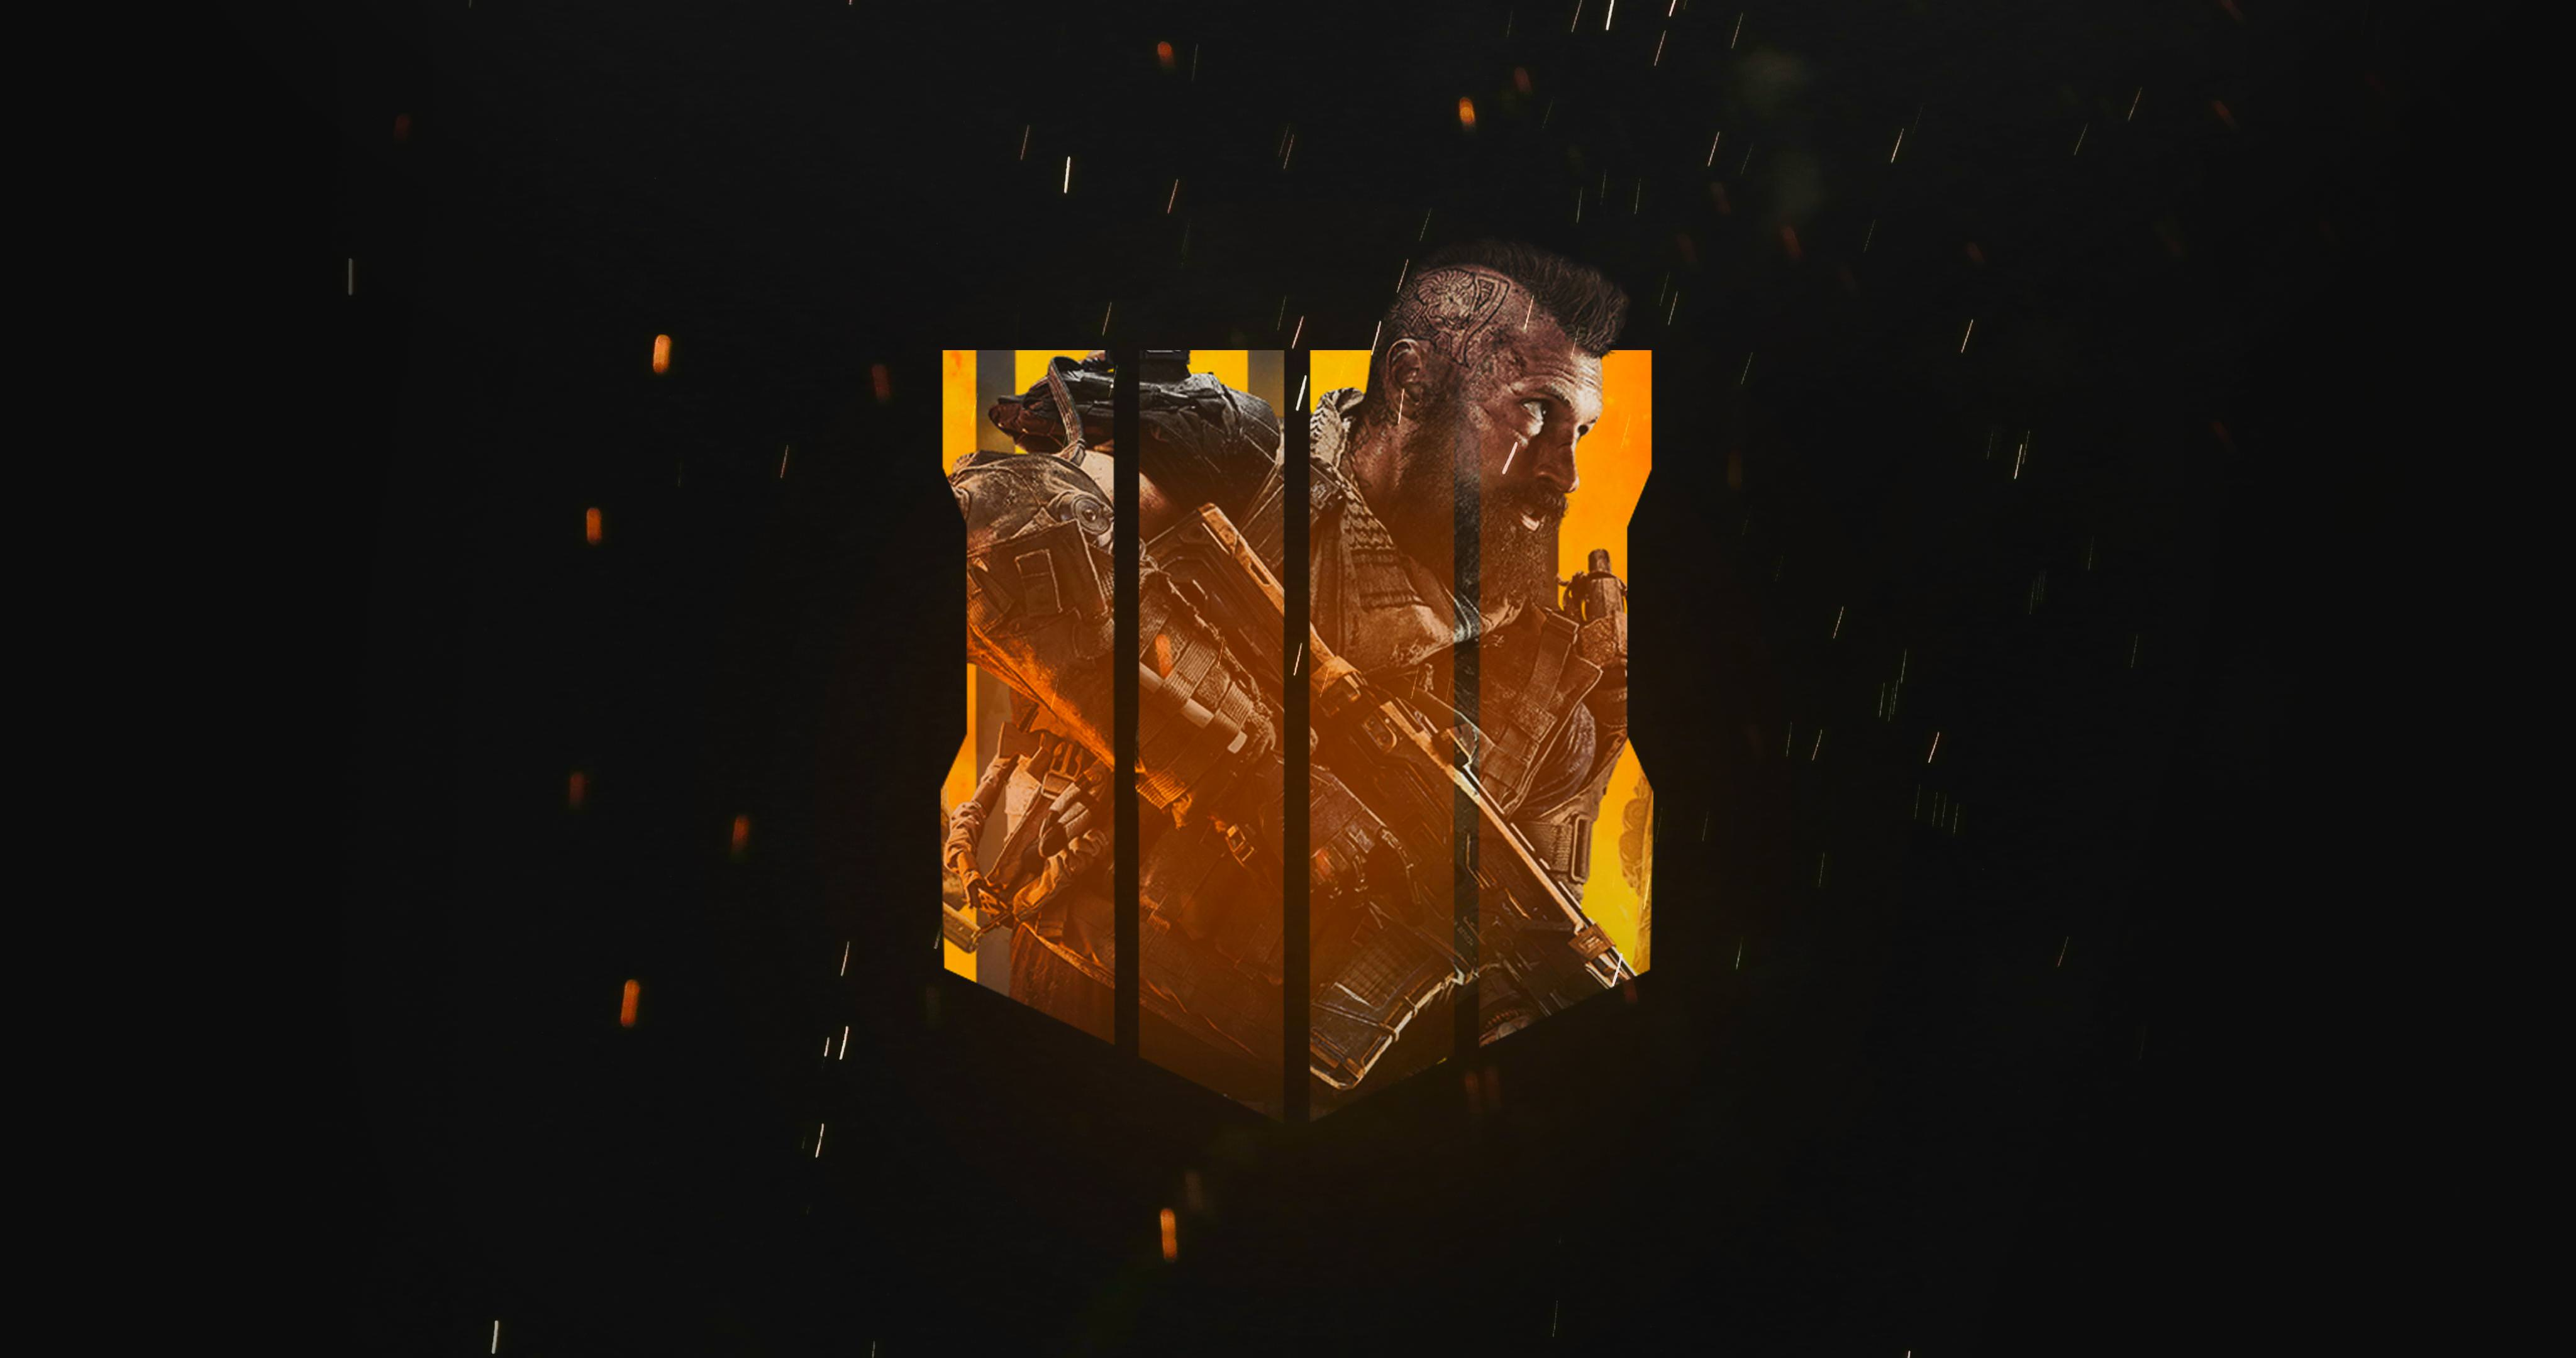 Call Of Duty Black Ops 4 Zombies Wallpapers Wallpaper Cave